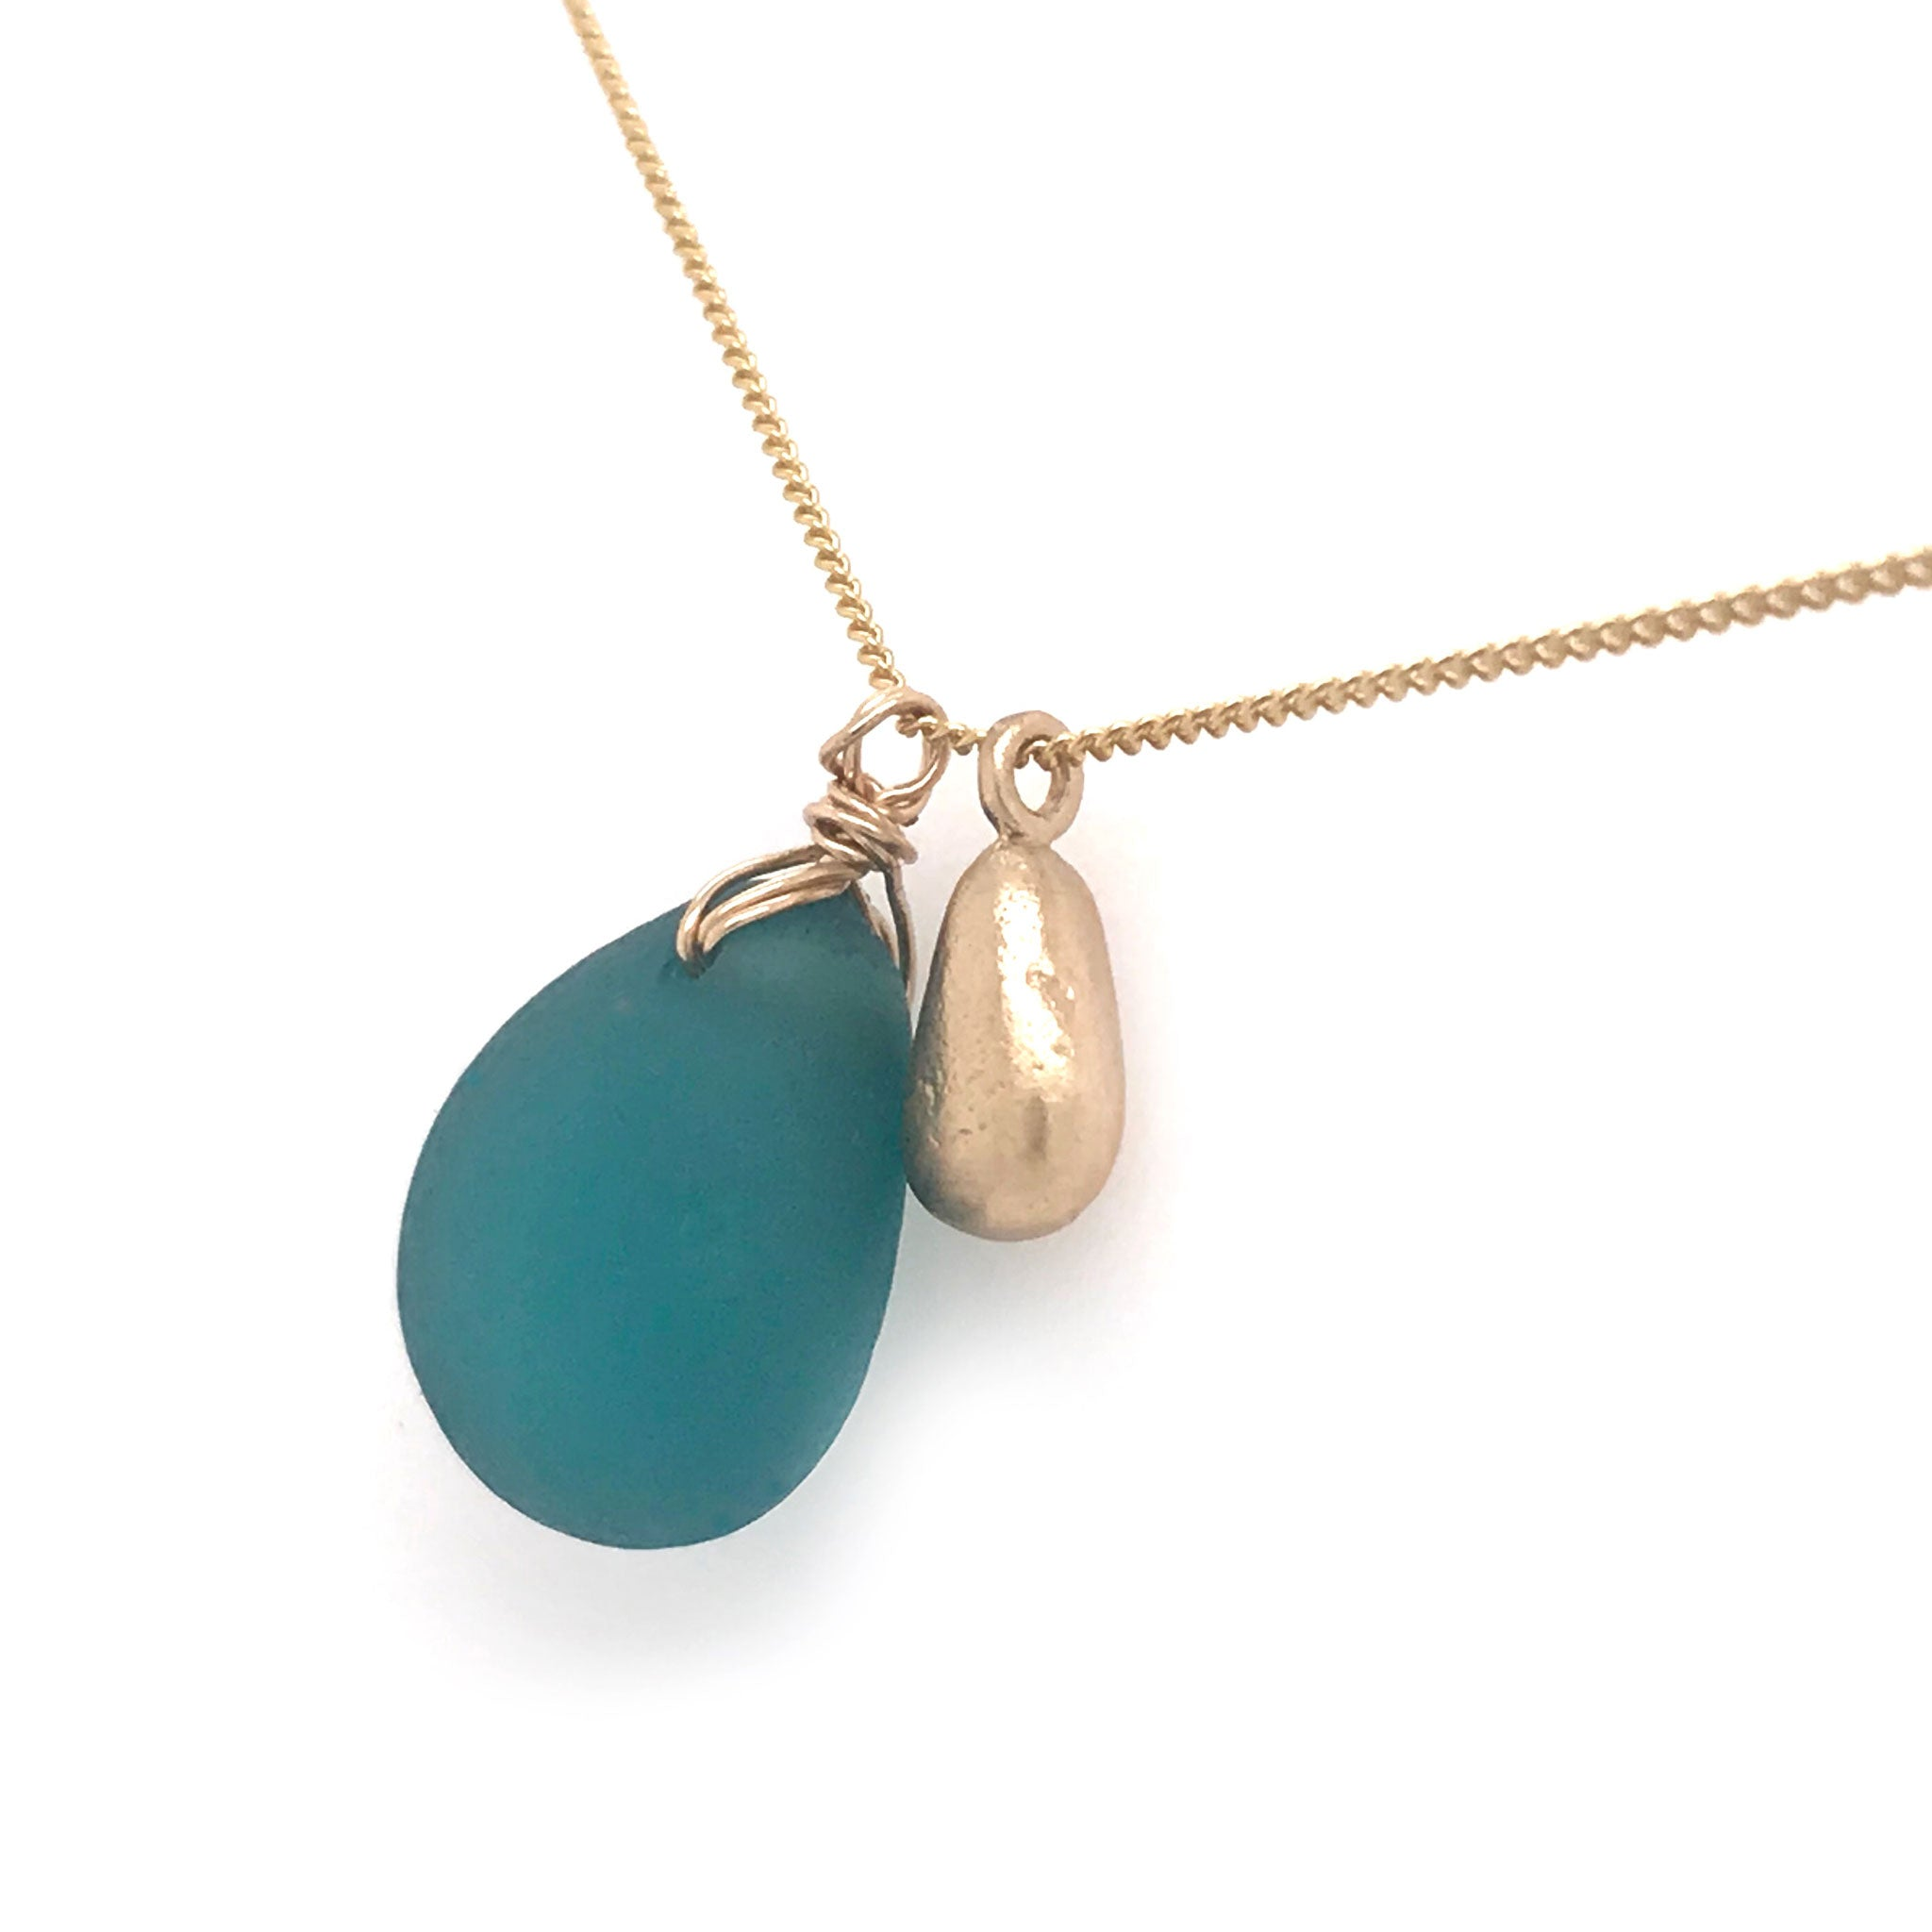 teal seaglass necklace on gold chain with solid 14k gold teardrop charm Kriket Broadhurst jewellery made in Sydney